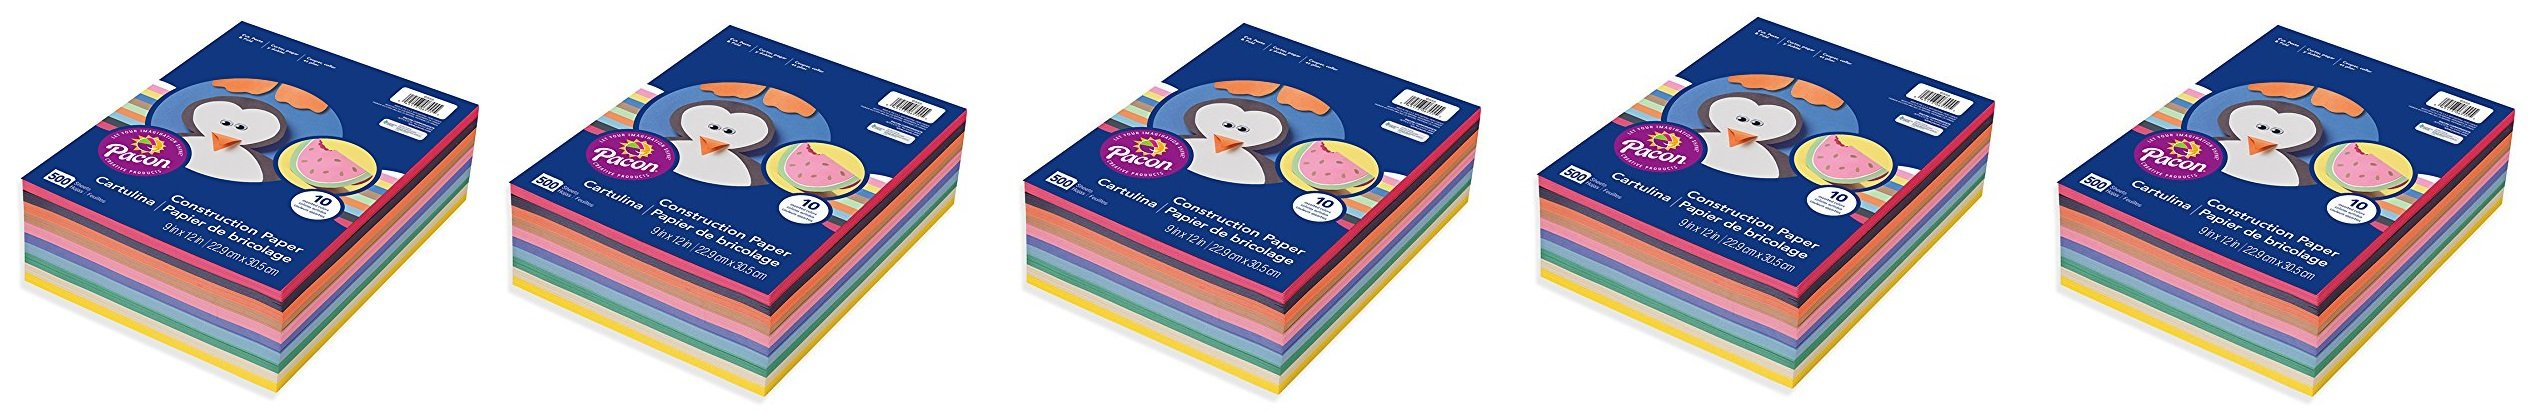 Pacon - Rainbow Super Value Construction Paper Ream, 45 lb, 9 x 12, Assorted - 500 Sheets (Pack 5)